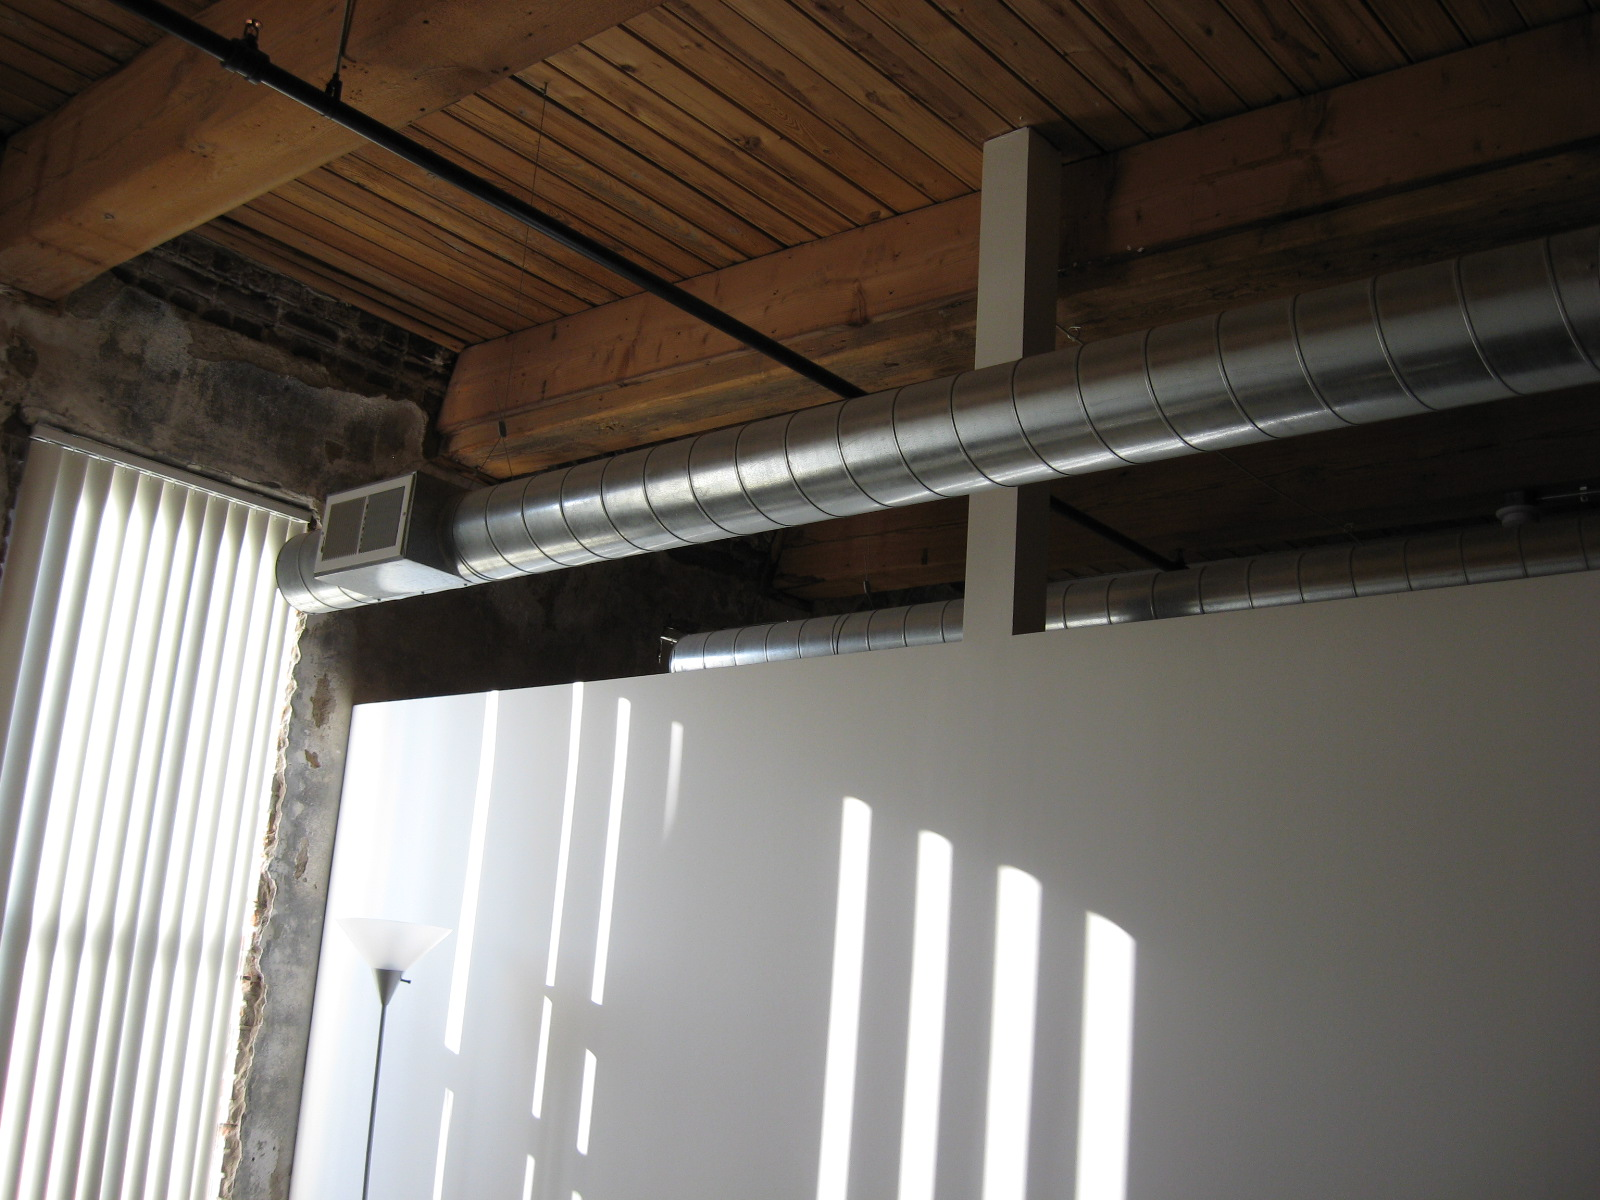 Ceiling with Exposed Duct Work 1600 x 1200